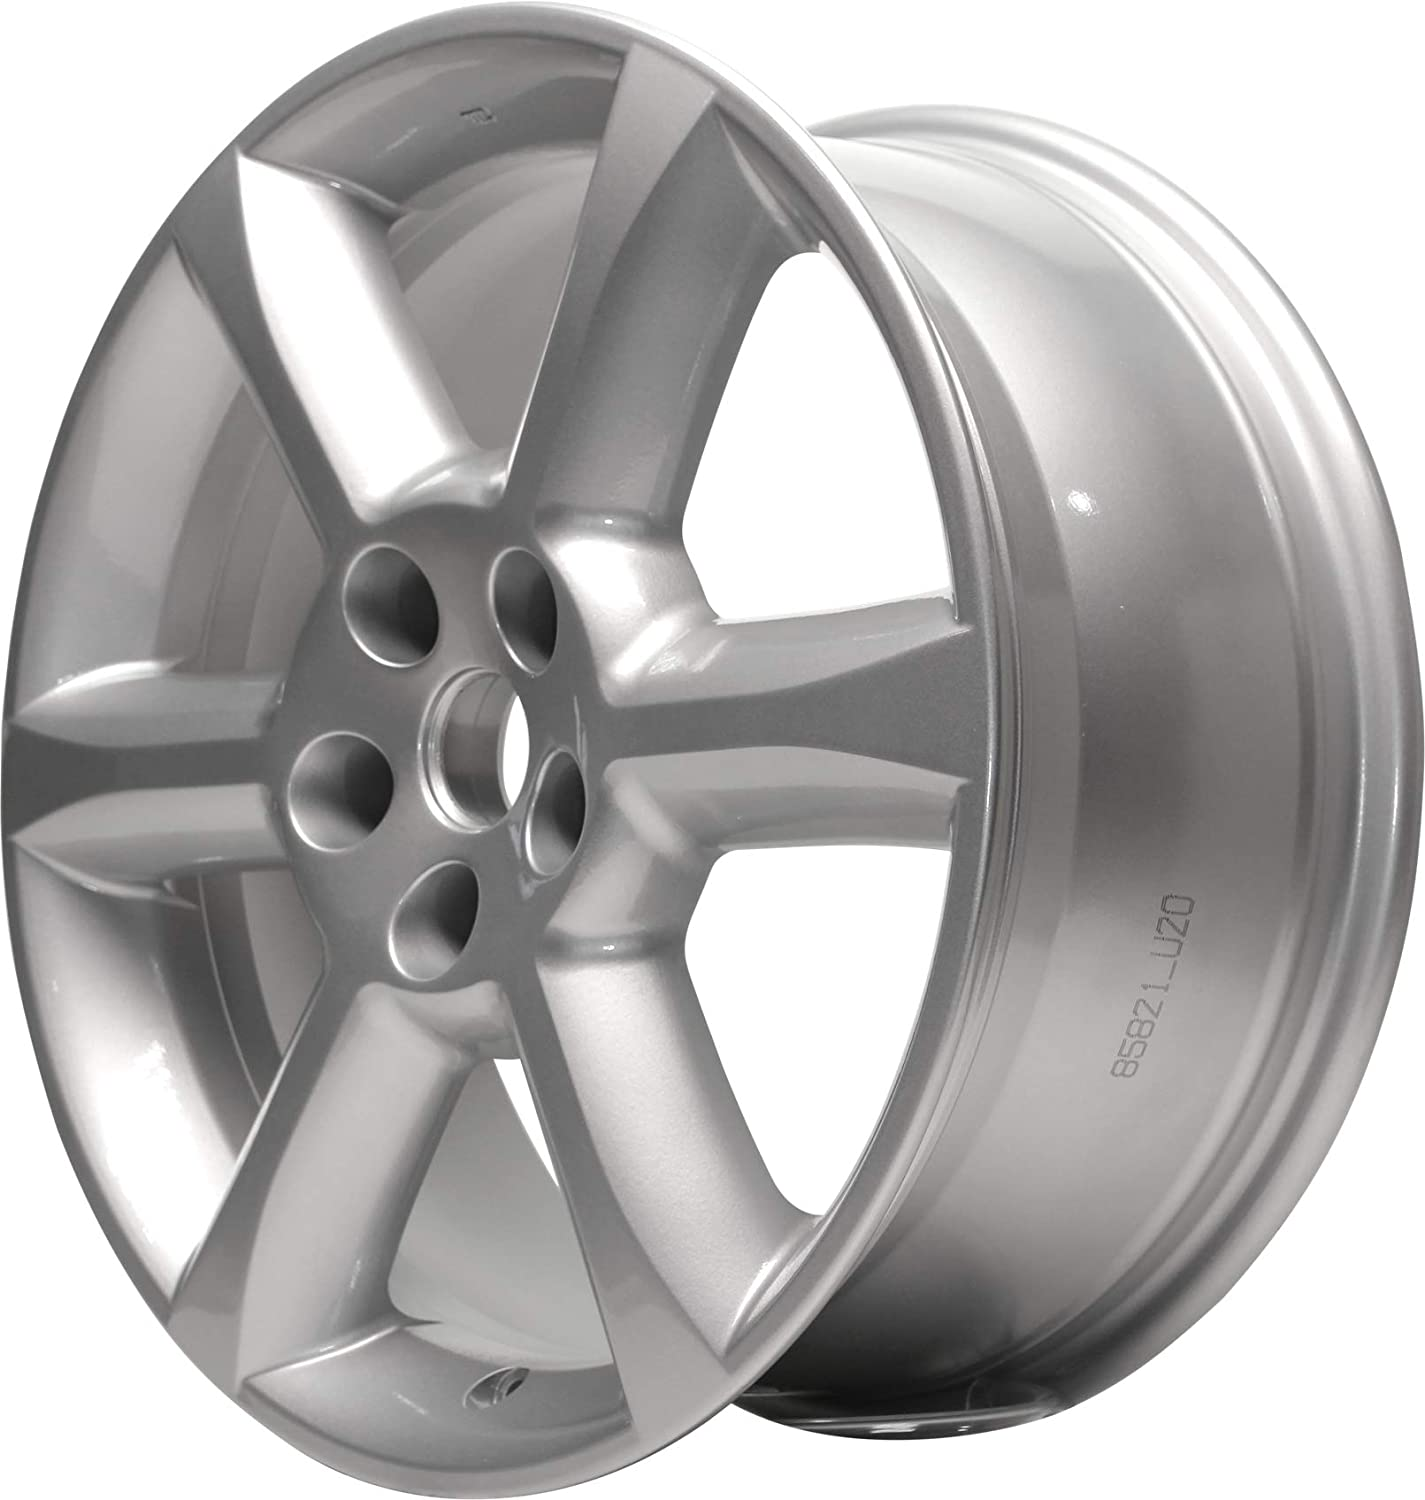 Partsynergy Replacement For New Aluminum Alloy Wheel Rim 18 Inch Fits 2004-2006 Nissan Maxima 5-115mm 6 Spokes